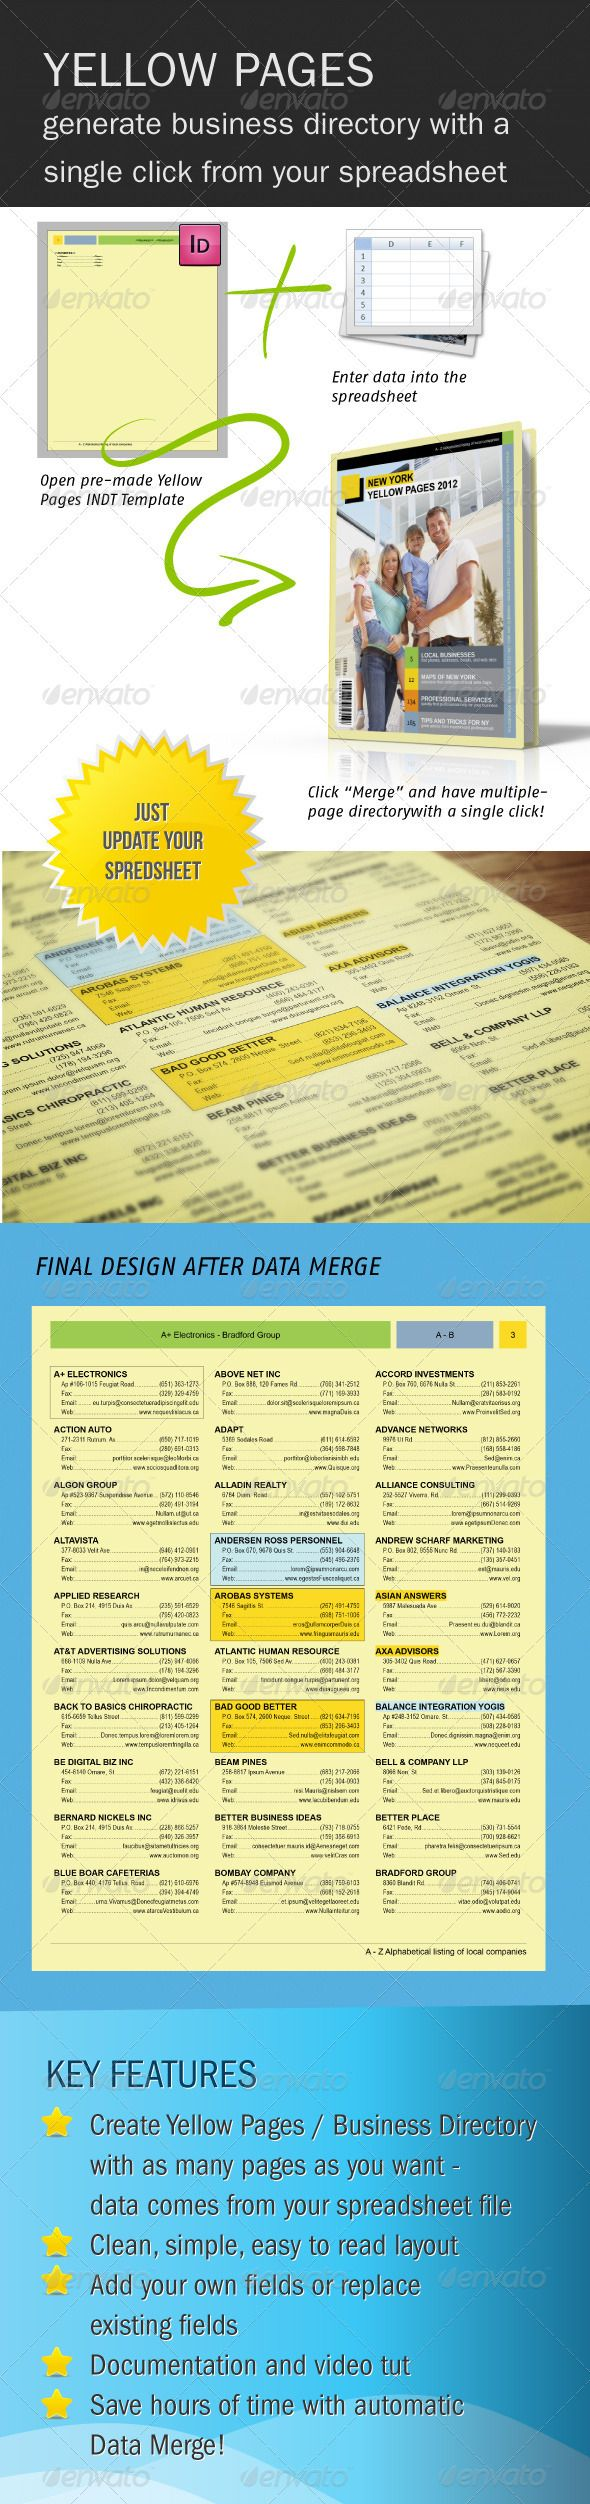 1000+ ideas about Yellow Pages Directory on Pinterest | Yellow ...